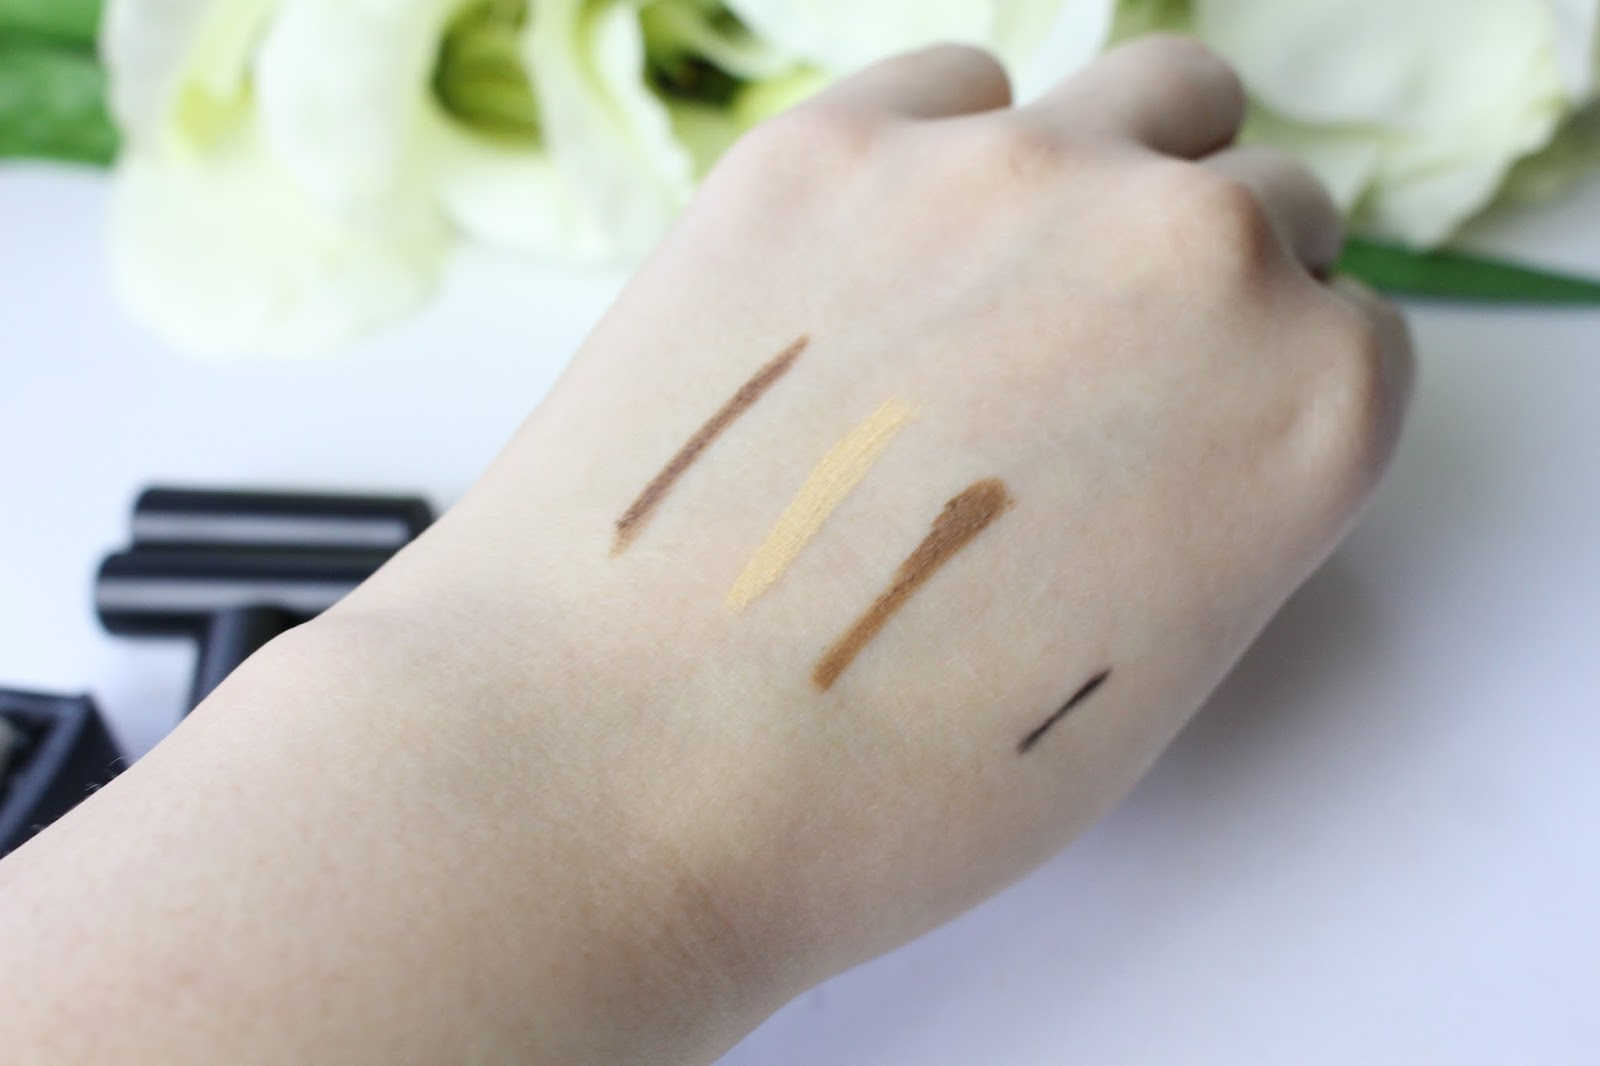 Face Shaping Contour Stix by w7 #6